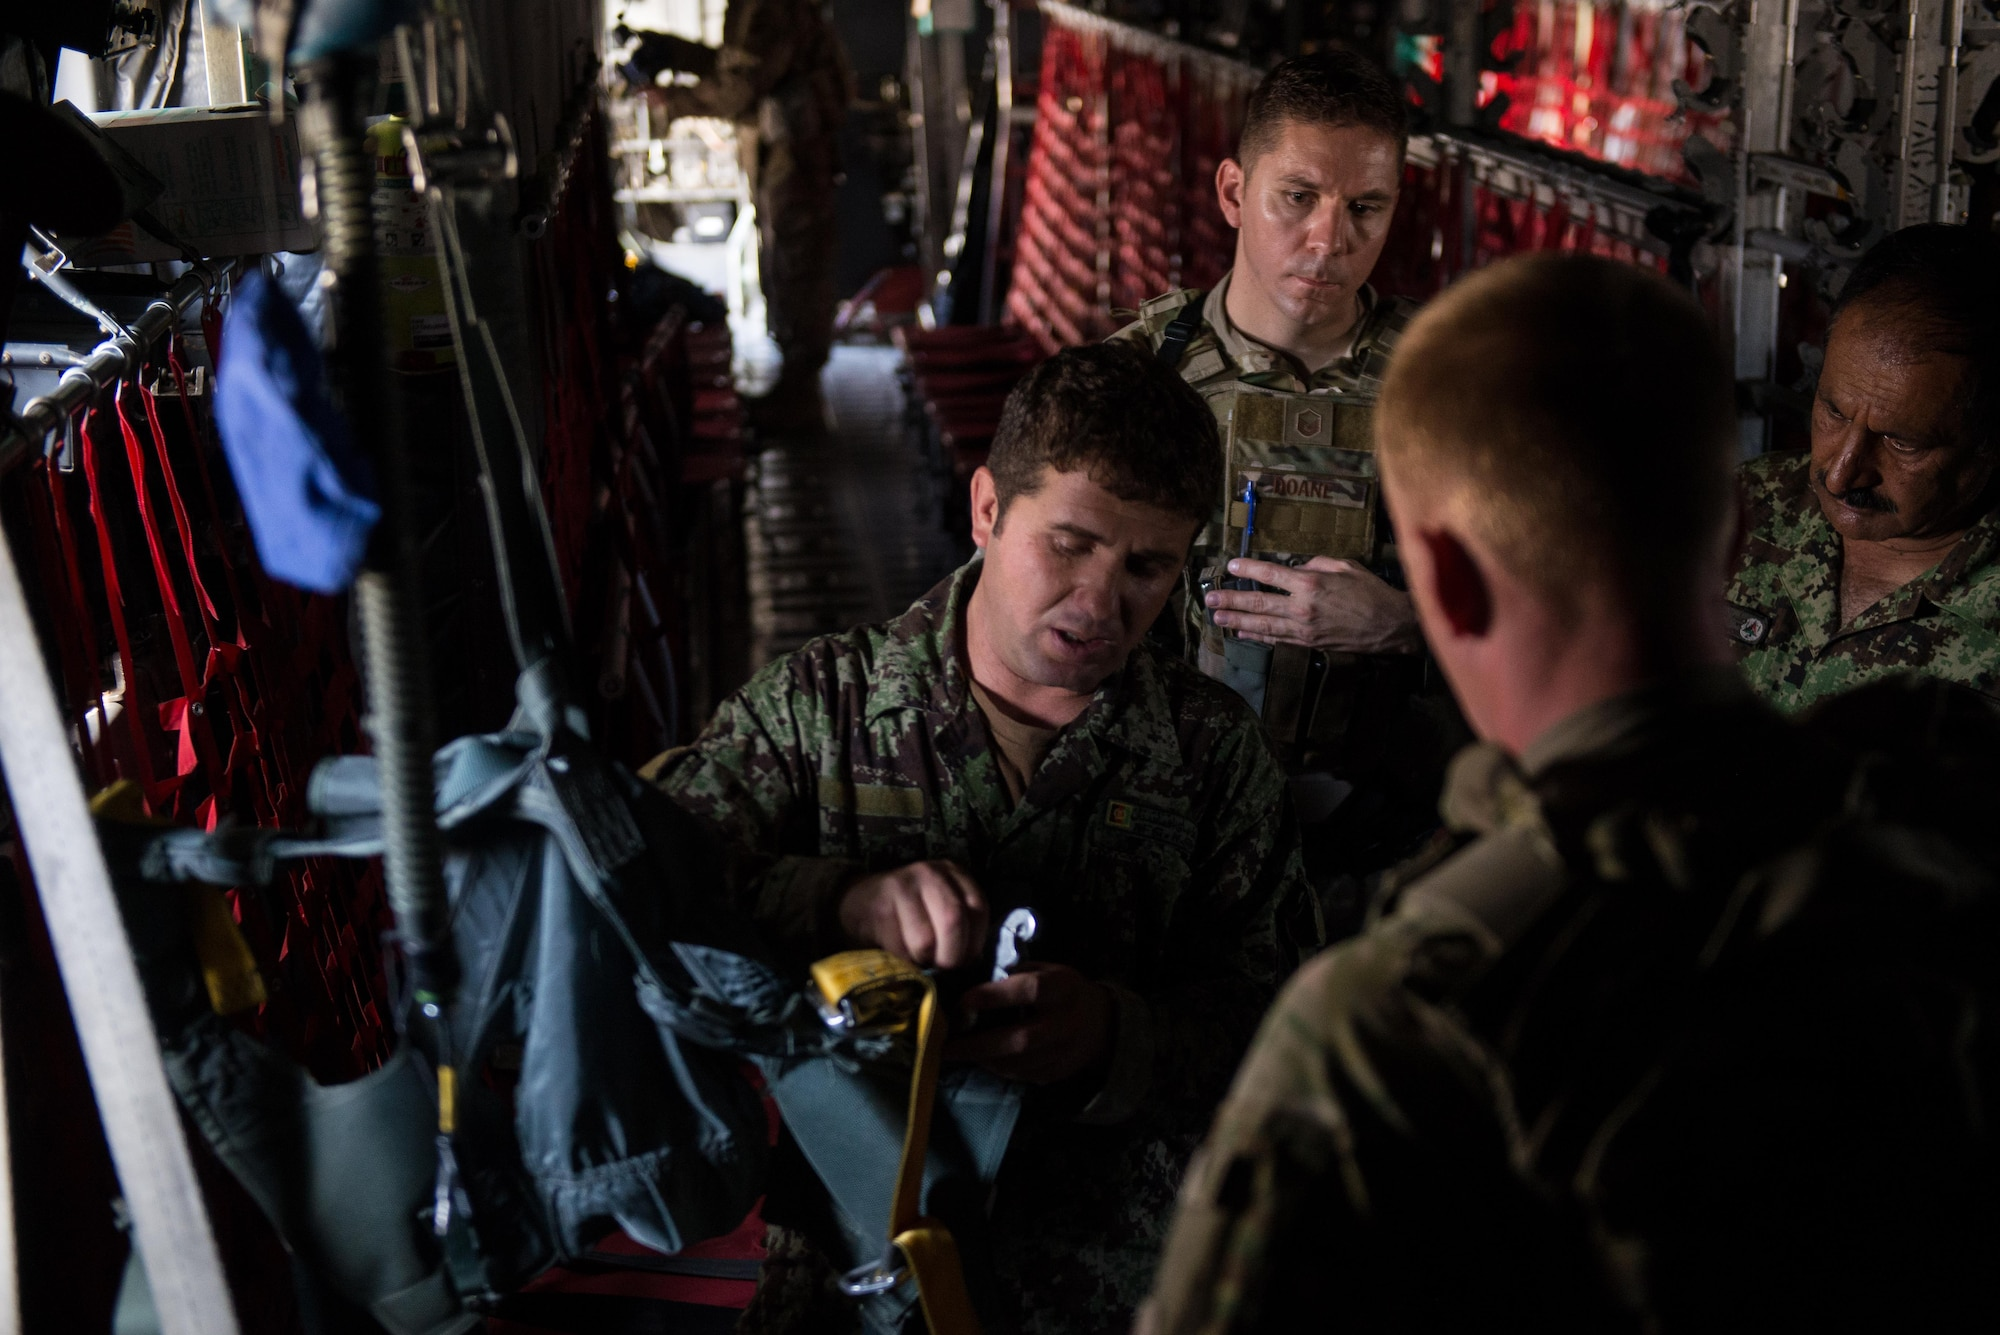 An Afghan airman demonstrates his aircrew flight equipment knowledge to U.S. Airmen from the 455th Air Expeditionary Wing and Train, Advice, Assist Command-Air aboard an Afghan C-130H Hercules at Hamid Karzai International Airport, Kabul, Afghanistan, Aug. 29, 2015. Airmen with the 455th AEW visited Forward Operating Base Oqab and Hamid Karzai International Airport to share their aircrew flight equipment knowledge with their Afghan counterparts and also assist TAAC-Air with keeping Coalition AFE equipment current. (U.S. Air Force photo by Tech. Sgt. Joseph Swafford/Released)